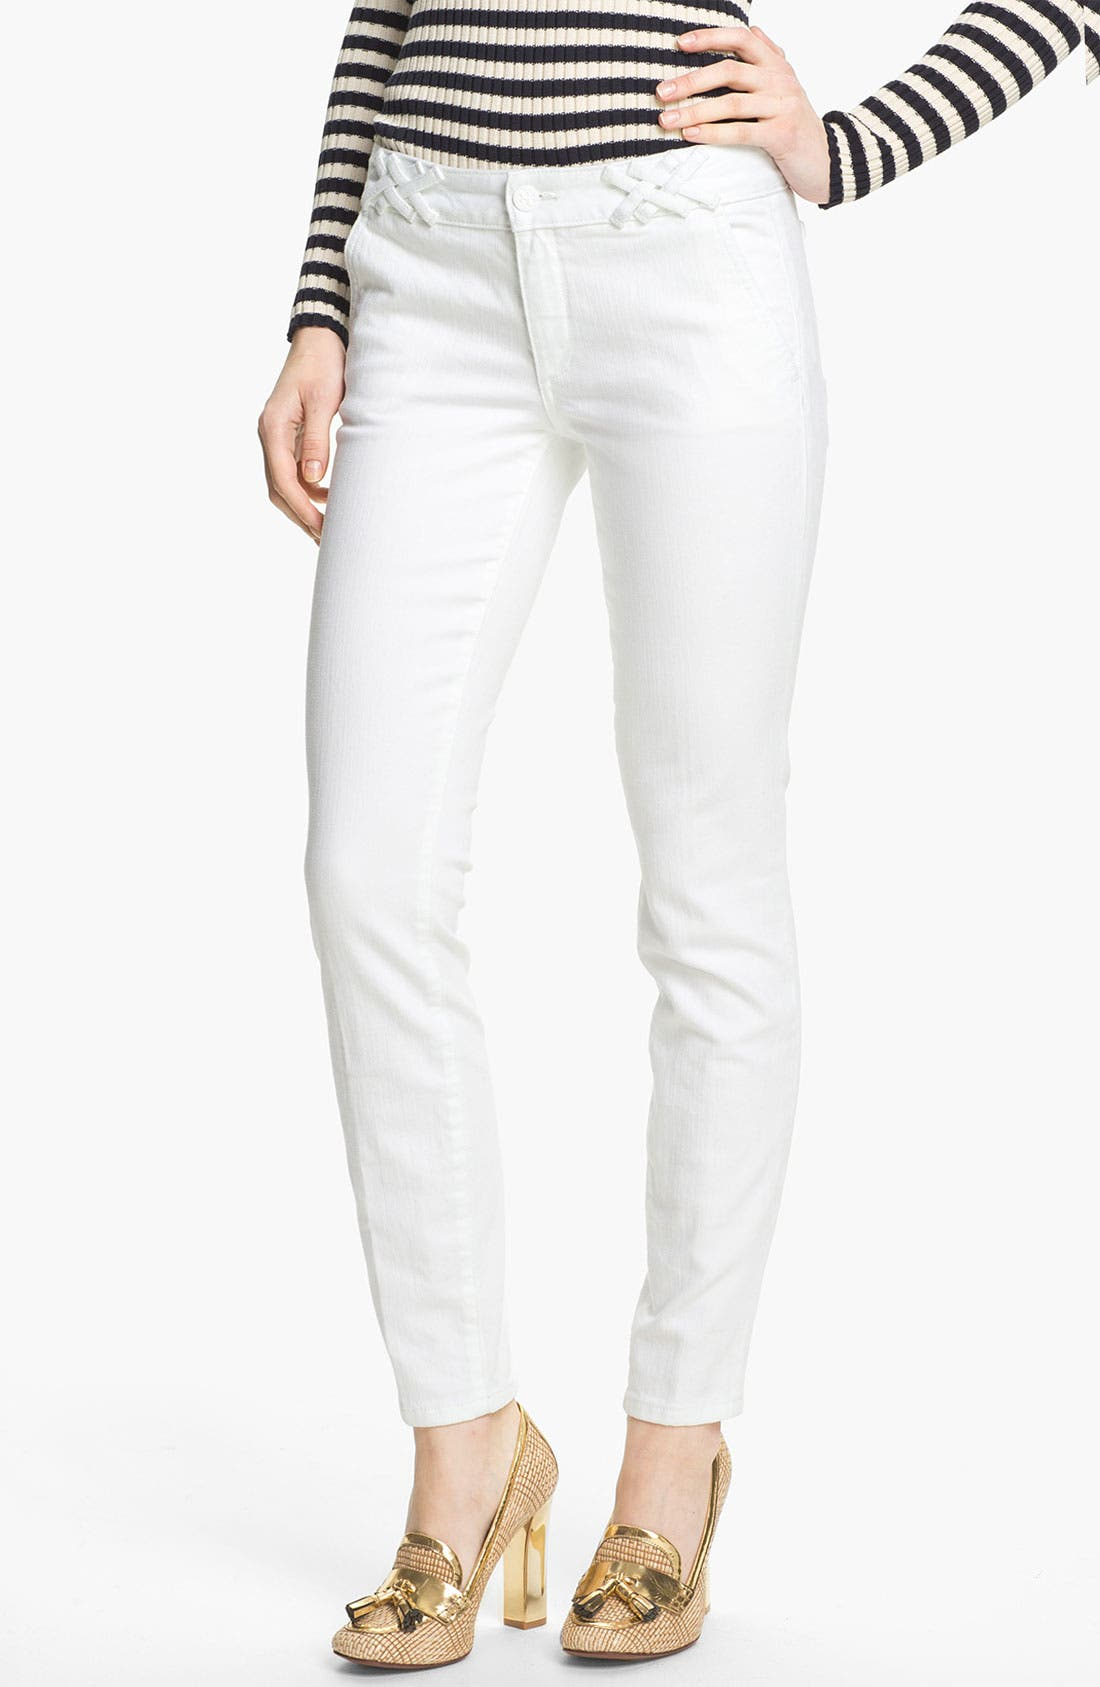 Alternate Image 1 Selected - Tory Burch 'Izzy' Ankle Skinny Jeans (Super Stonewashed White)